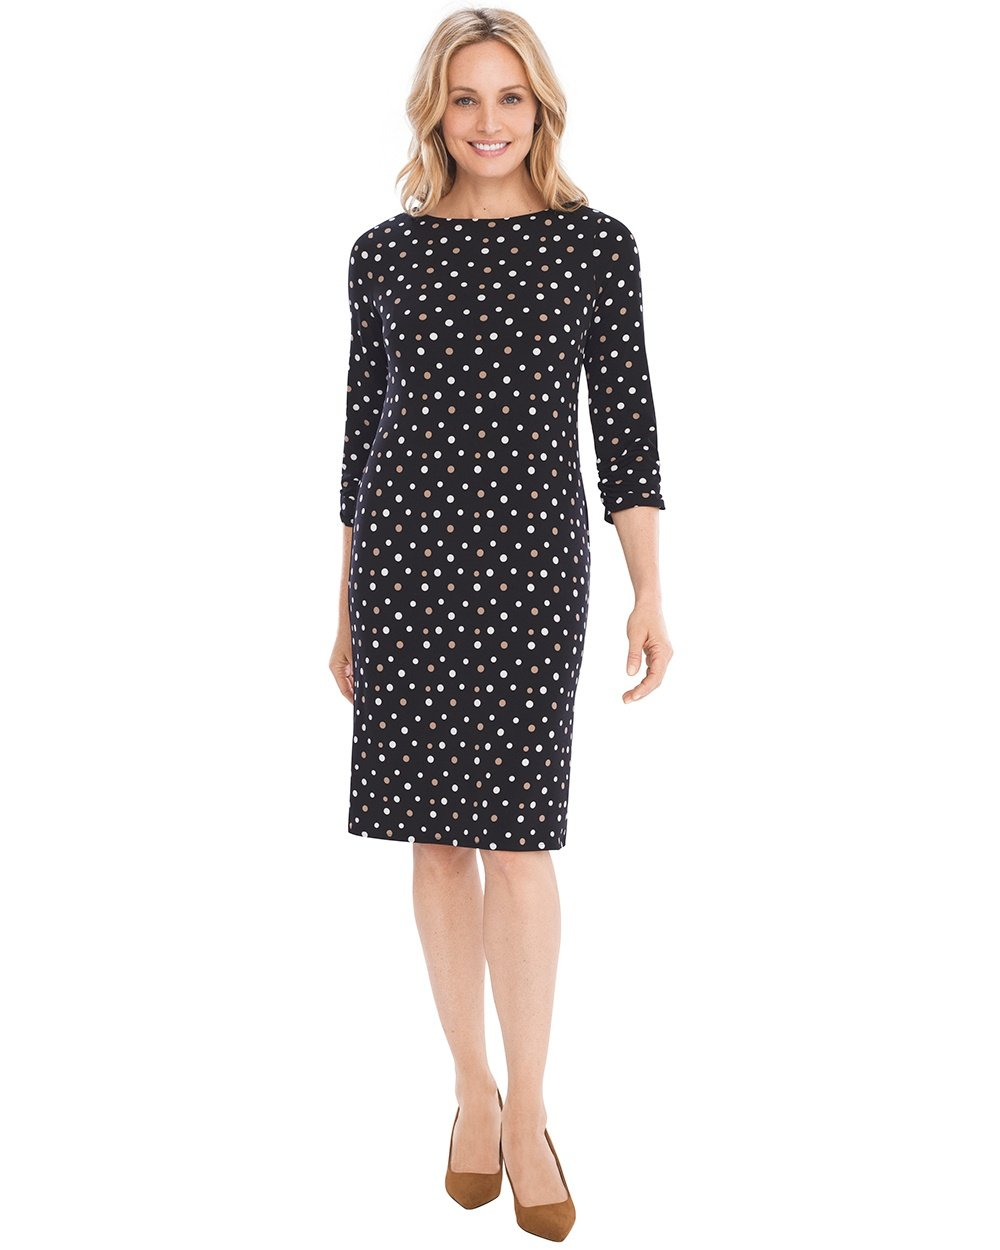 Chico's Women's Dot Ruched-Sleeve Dress Size 4/6 S (0) Black/White